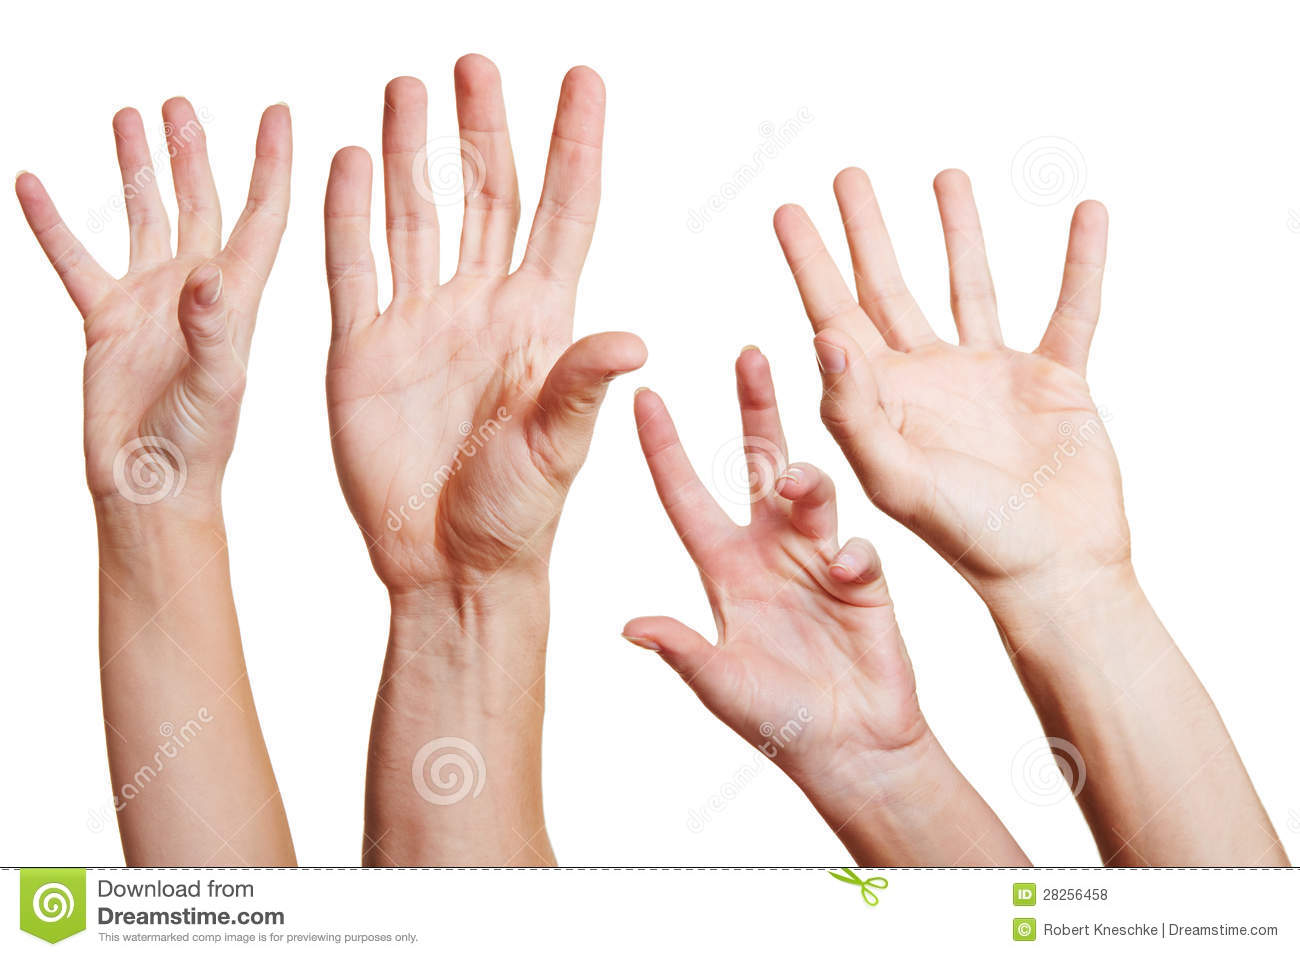 Many hands reaching out